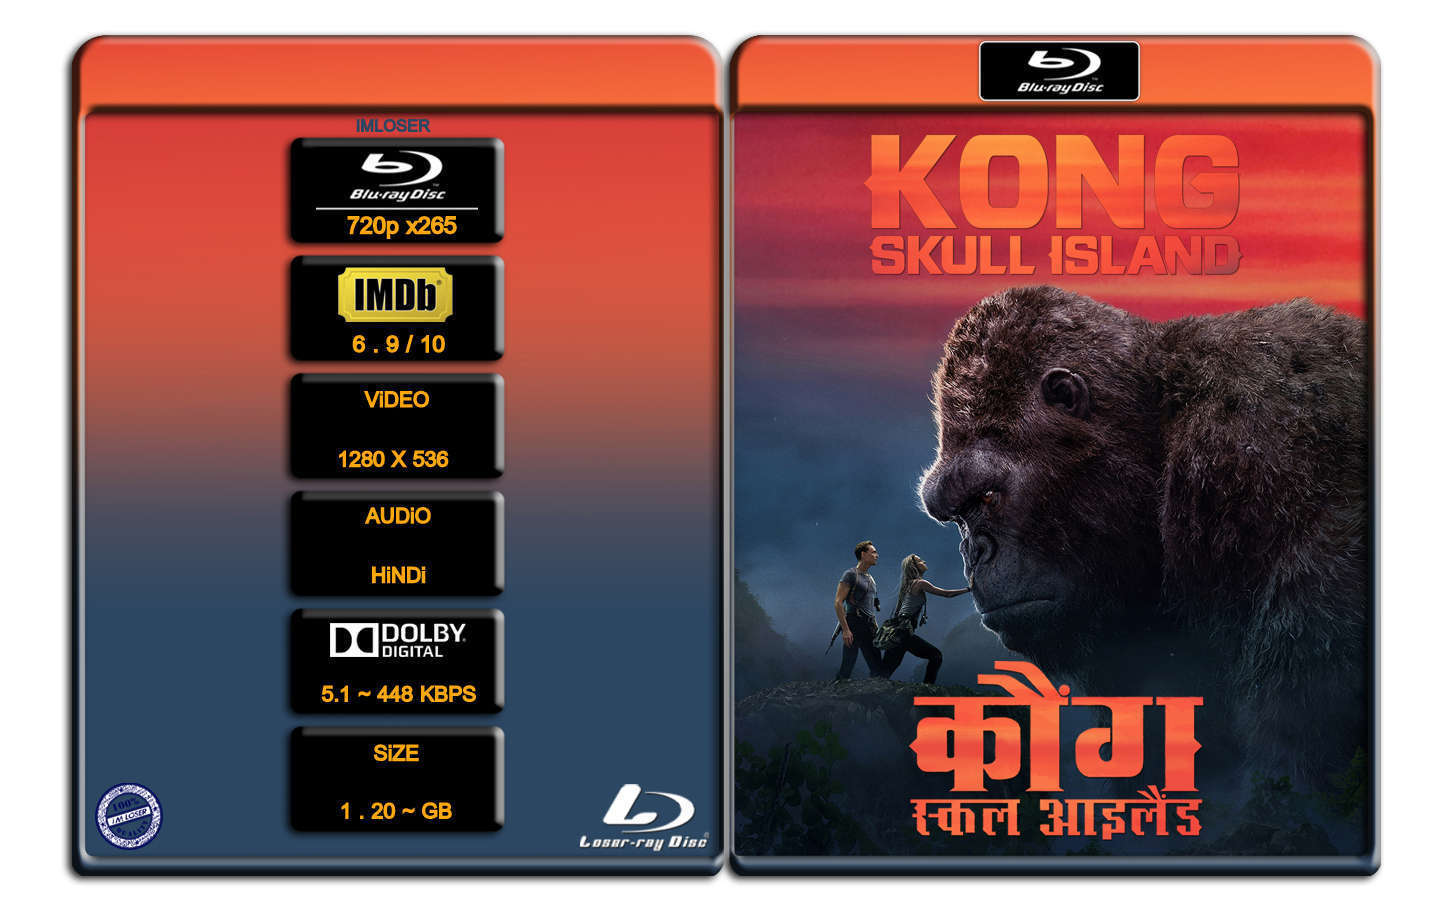 Download Kong Skull Island [2017] 720p BluRay x265 [DD 5 1 HINDI] ® I'm L Torrent